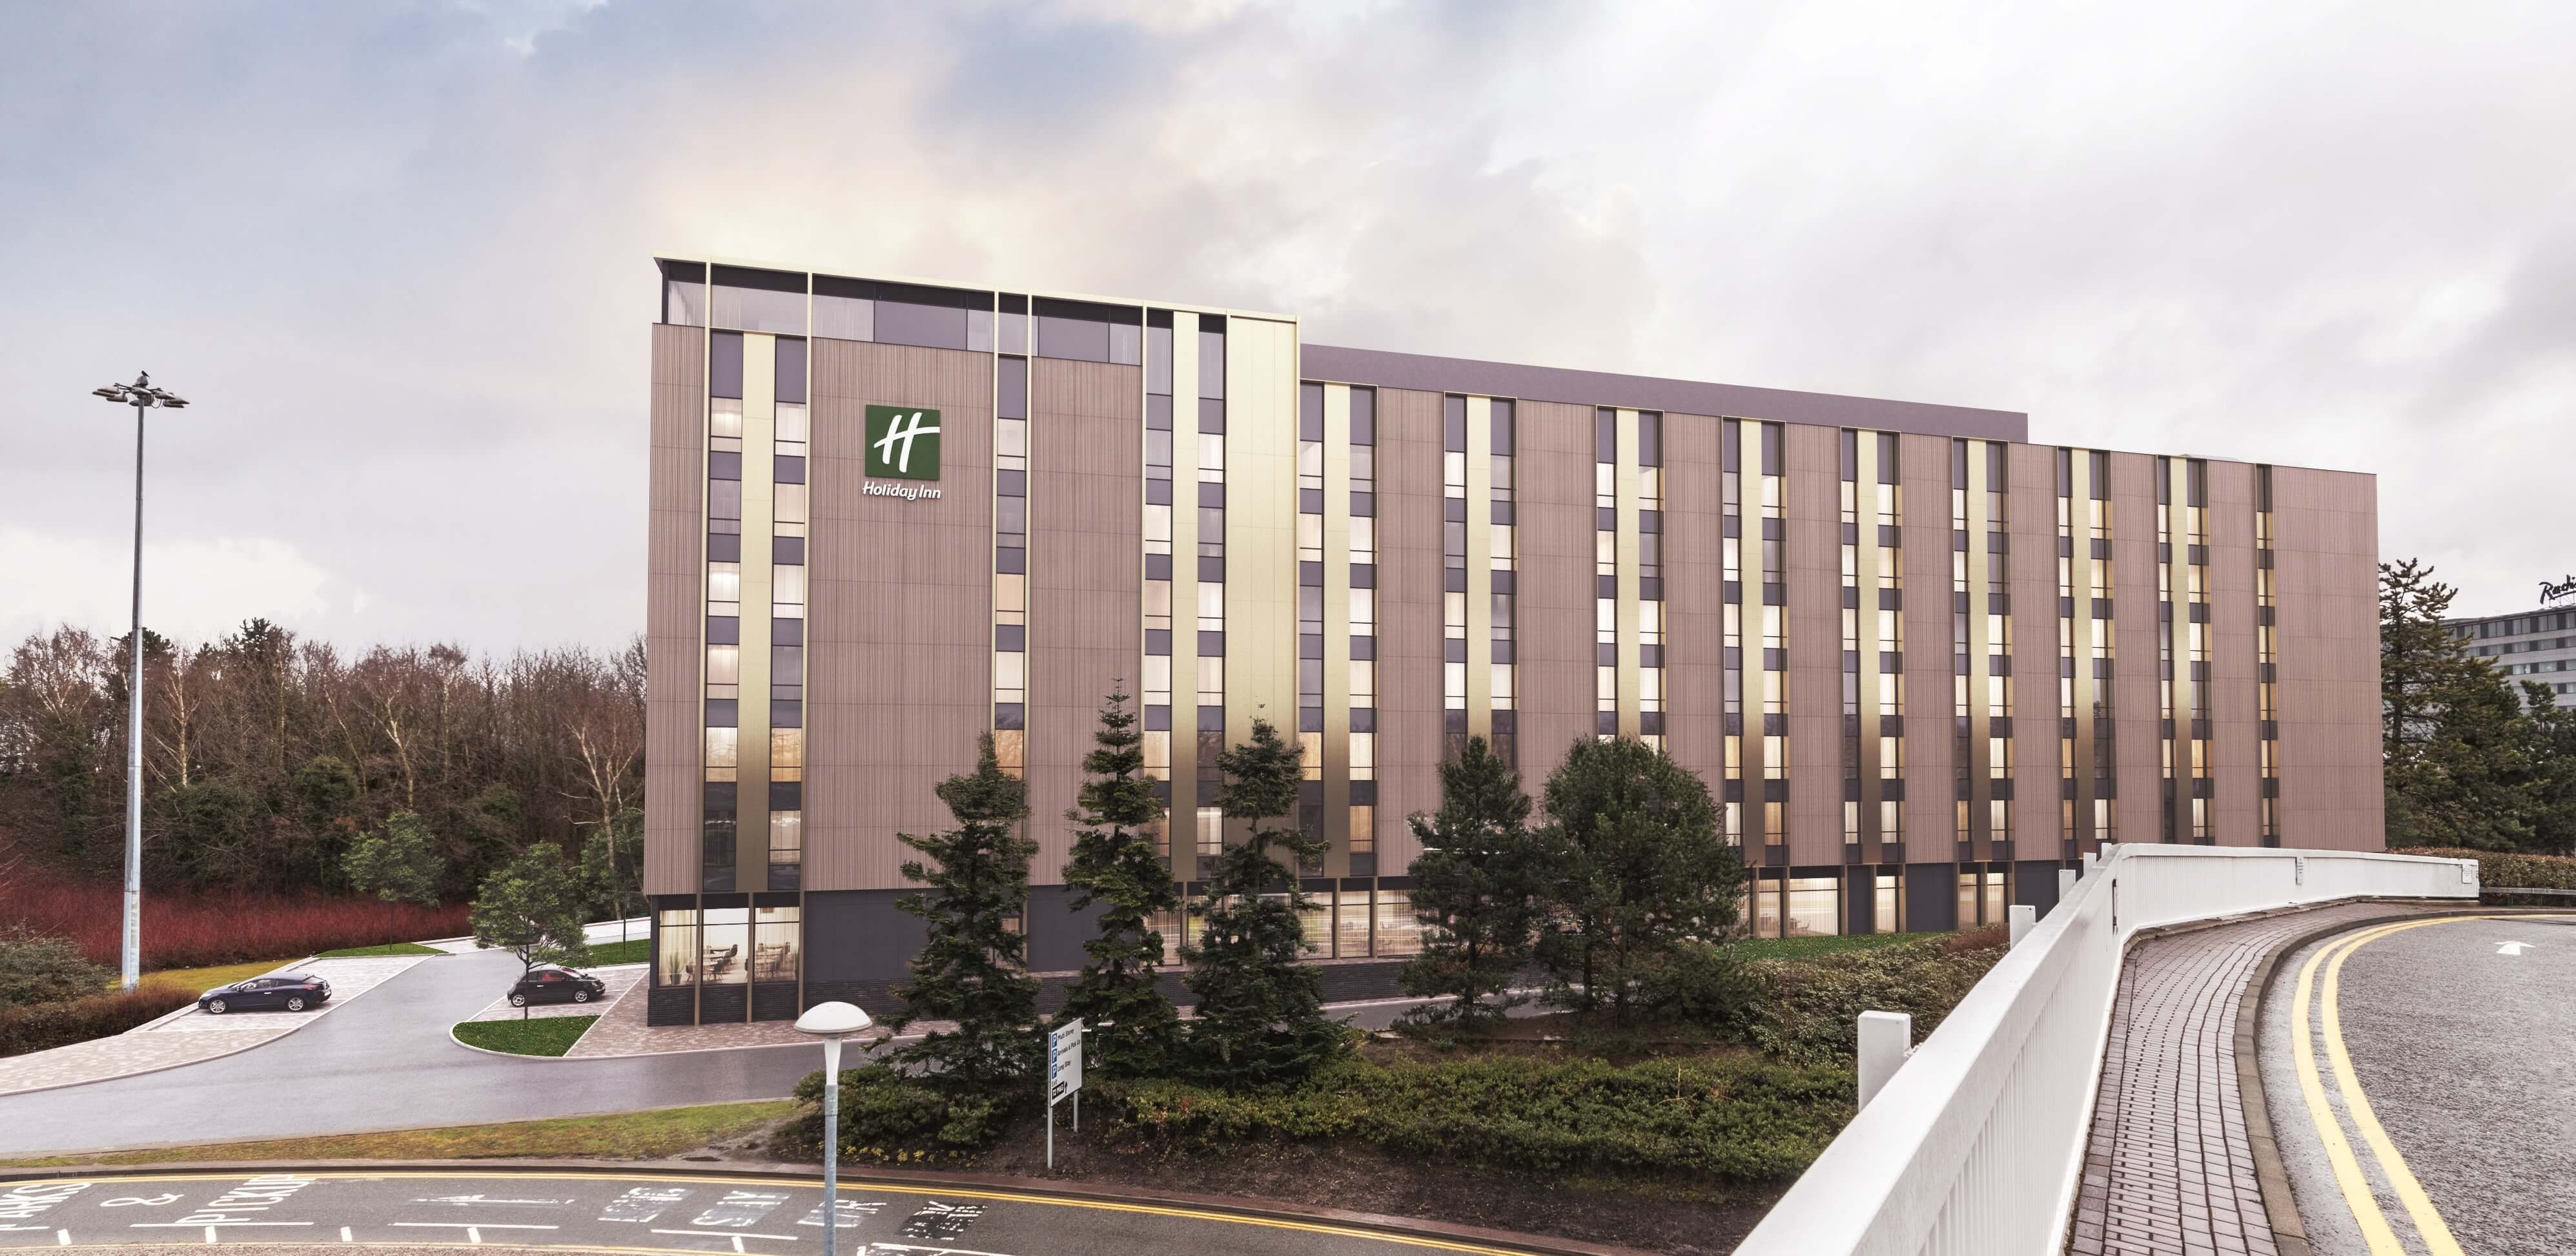 Airport City Announces Deals To Deliver Holiday Inn And Ibis Budget